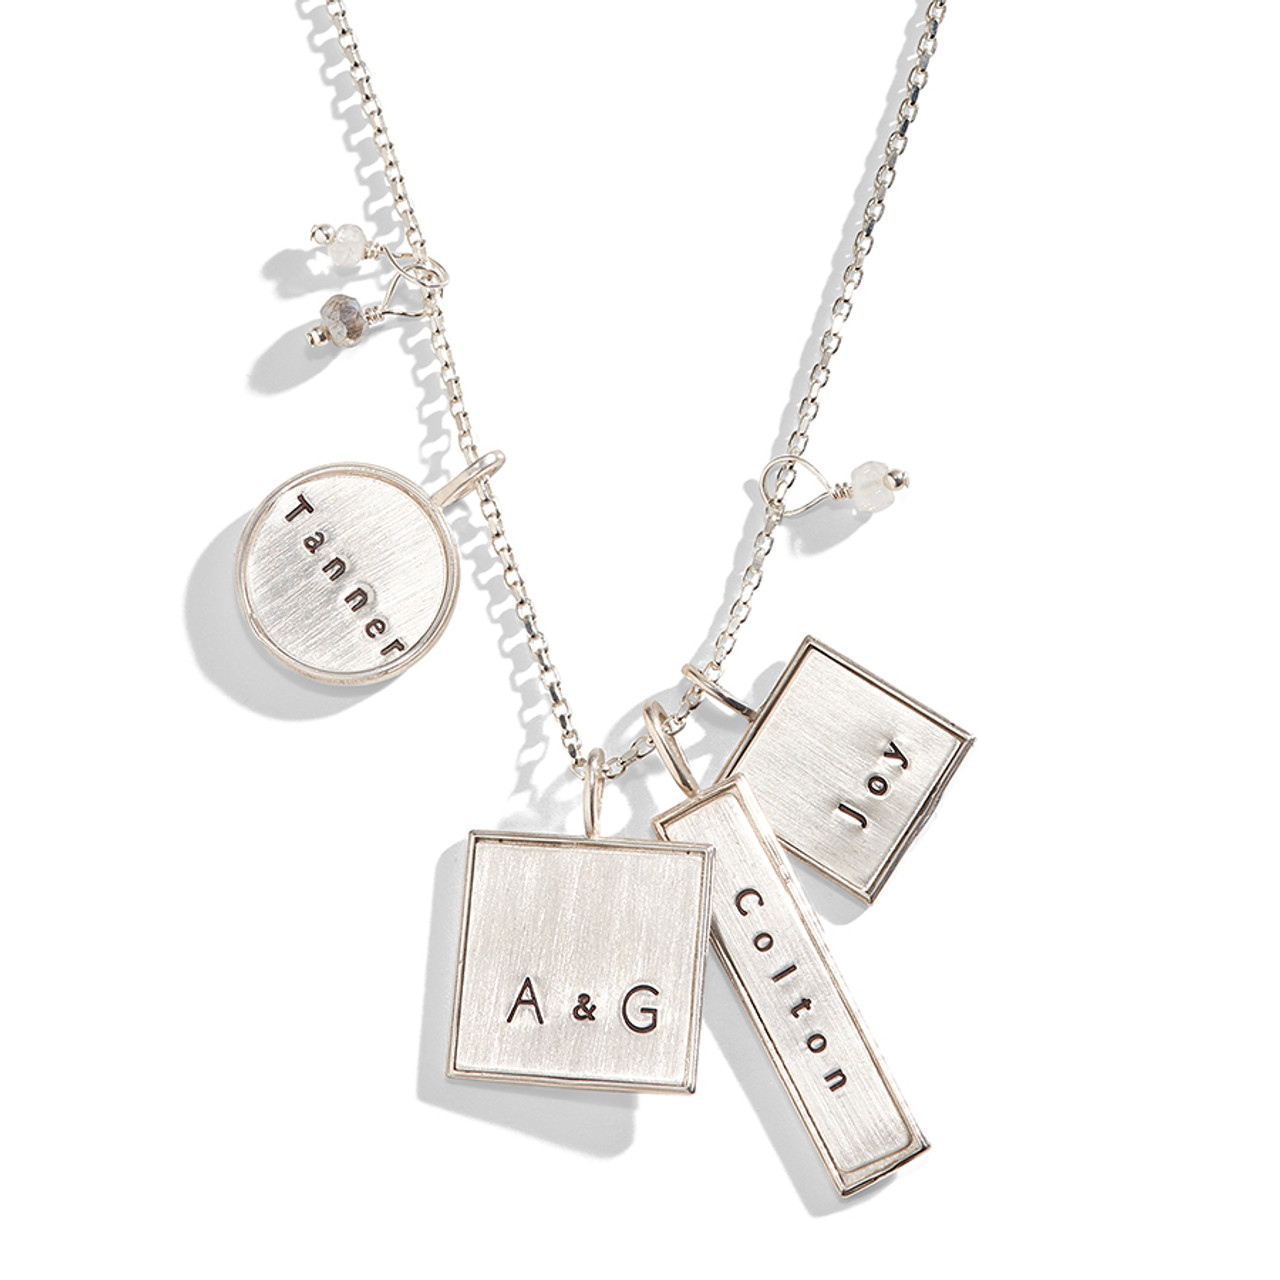 75f8f06ac00ff Valley Girl Mixed Shape Personalized Necklace